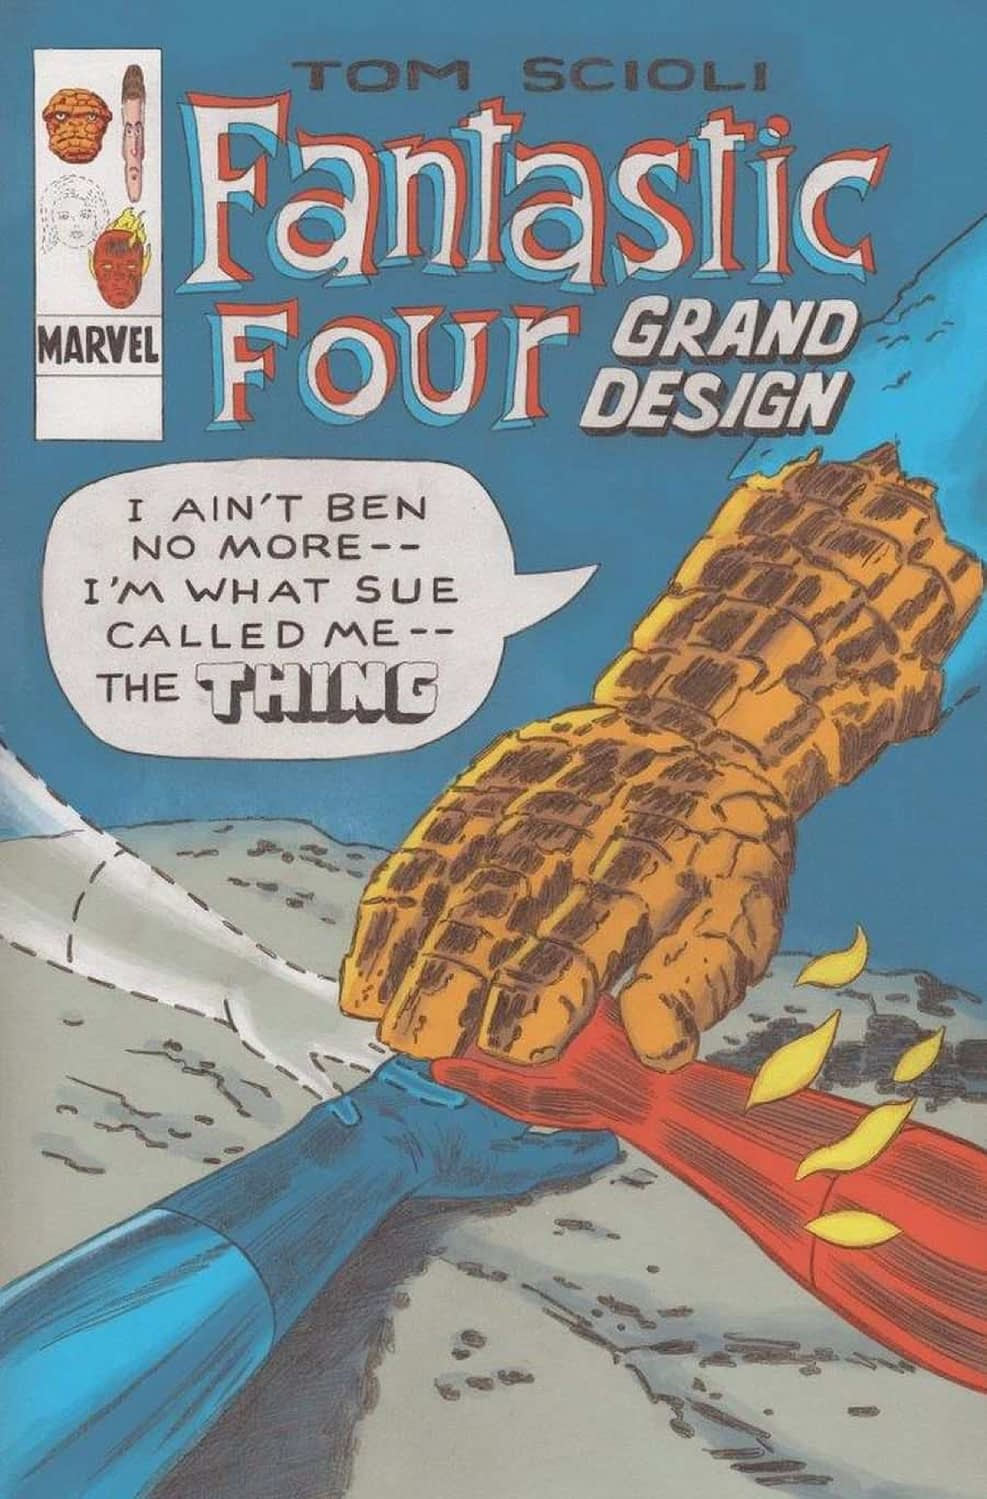 Tom Scioli Explore's Fantastic Four Grand Design at Marvel